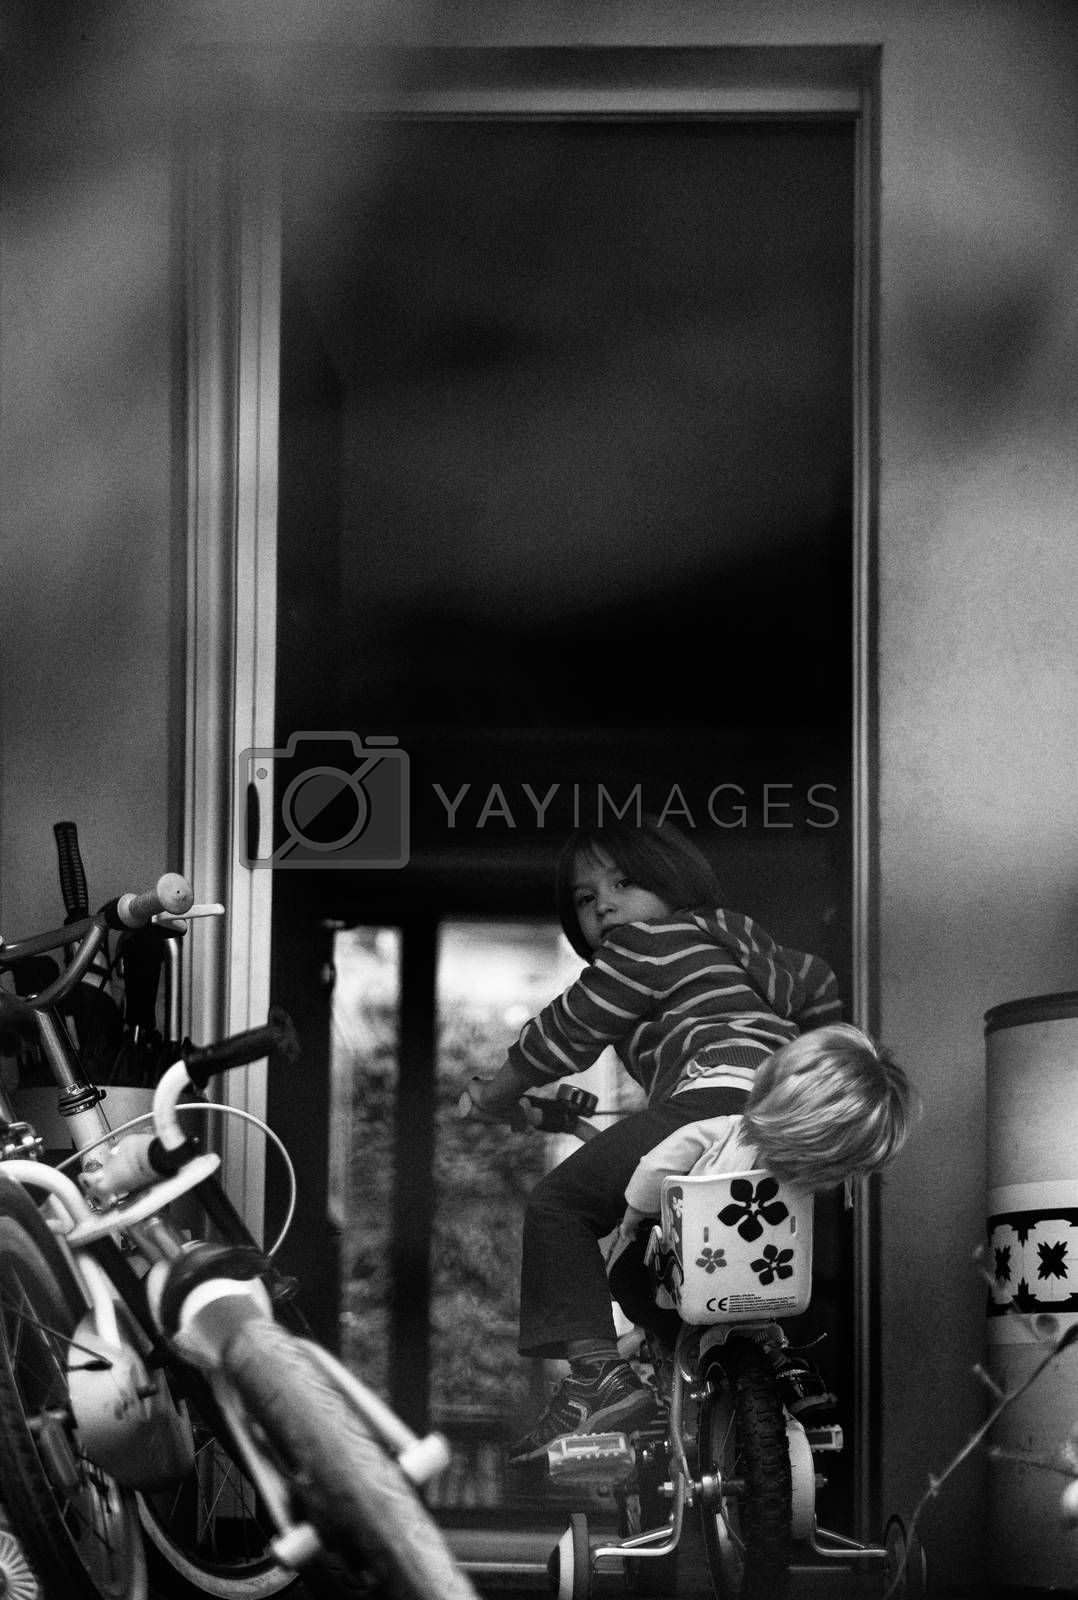 Child on the bike by bepsimage